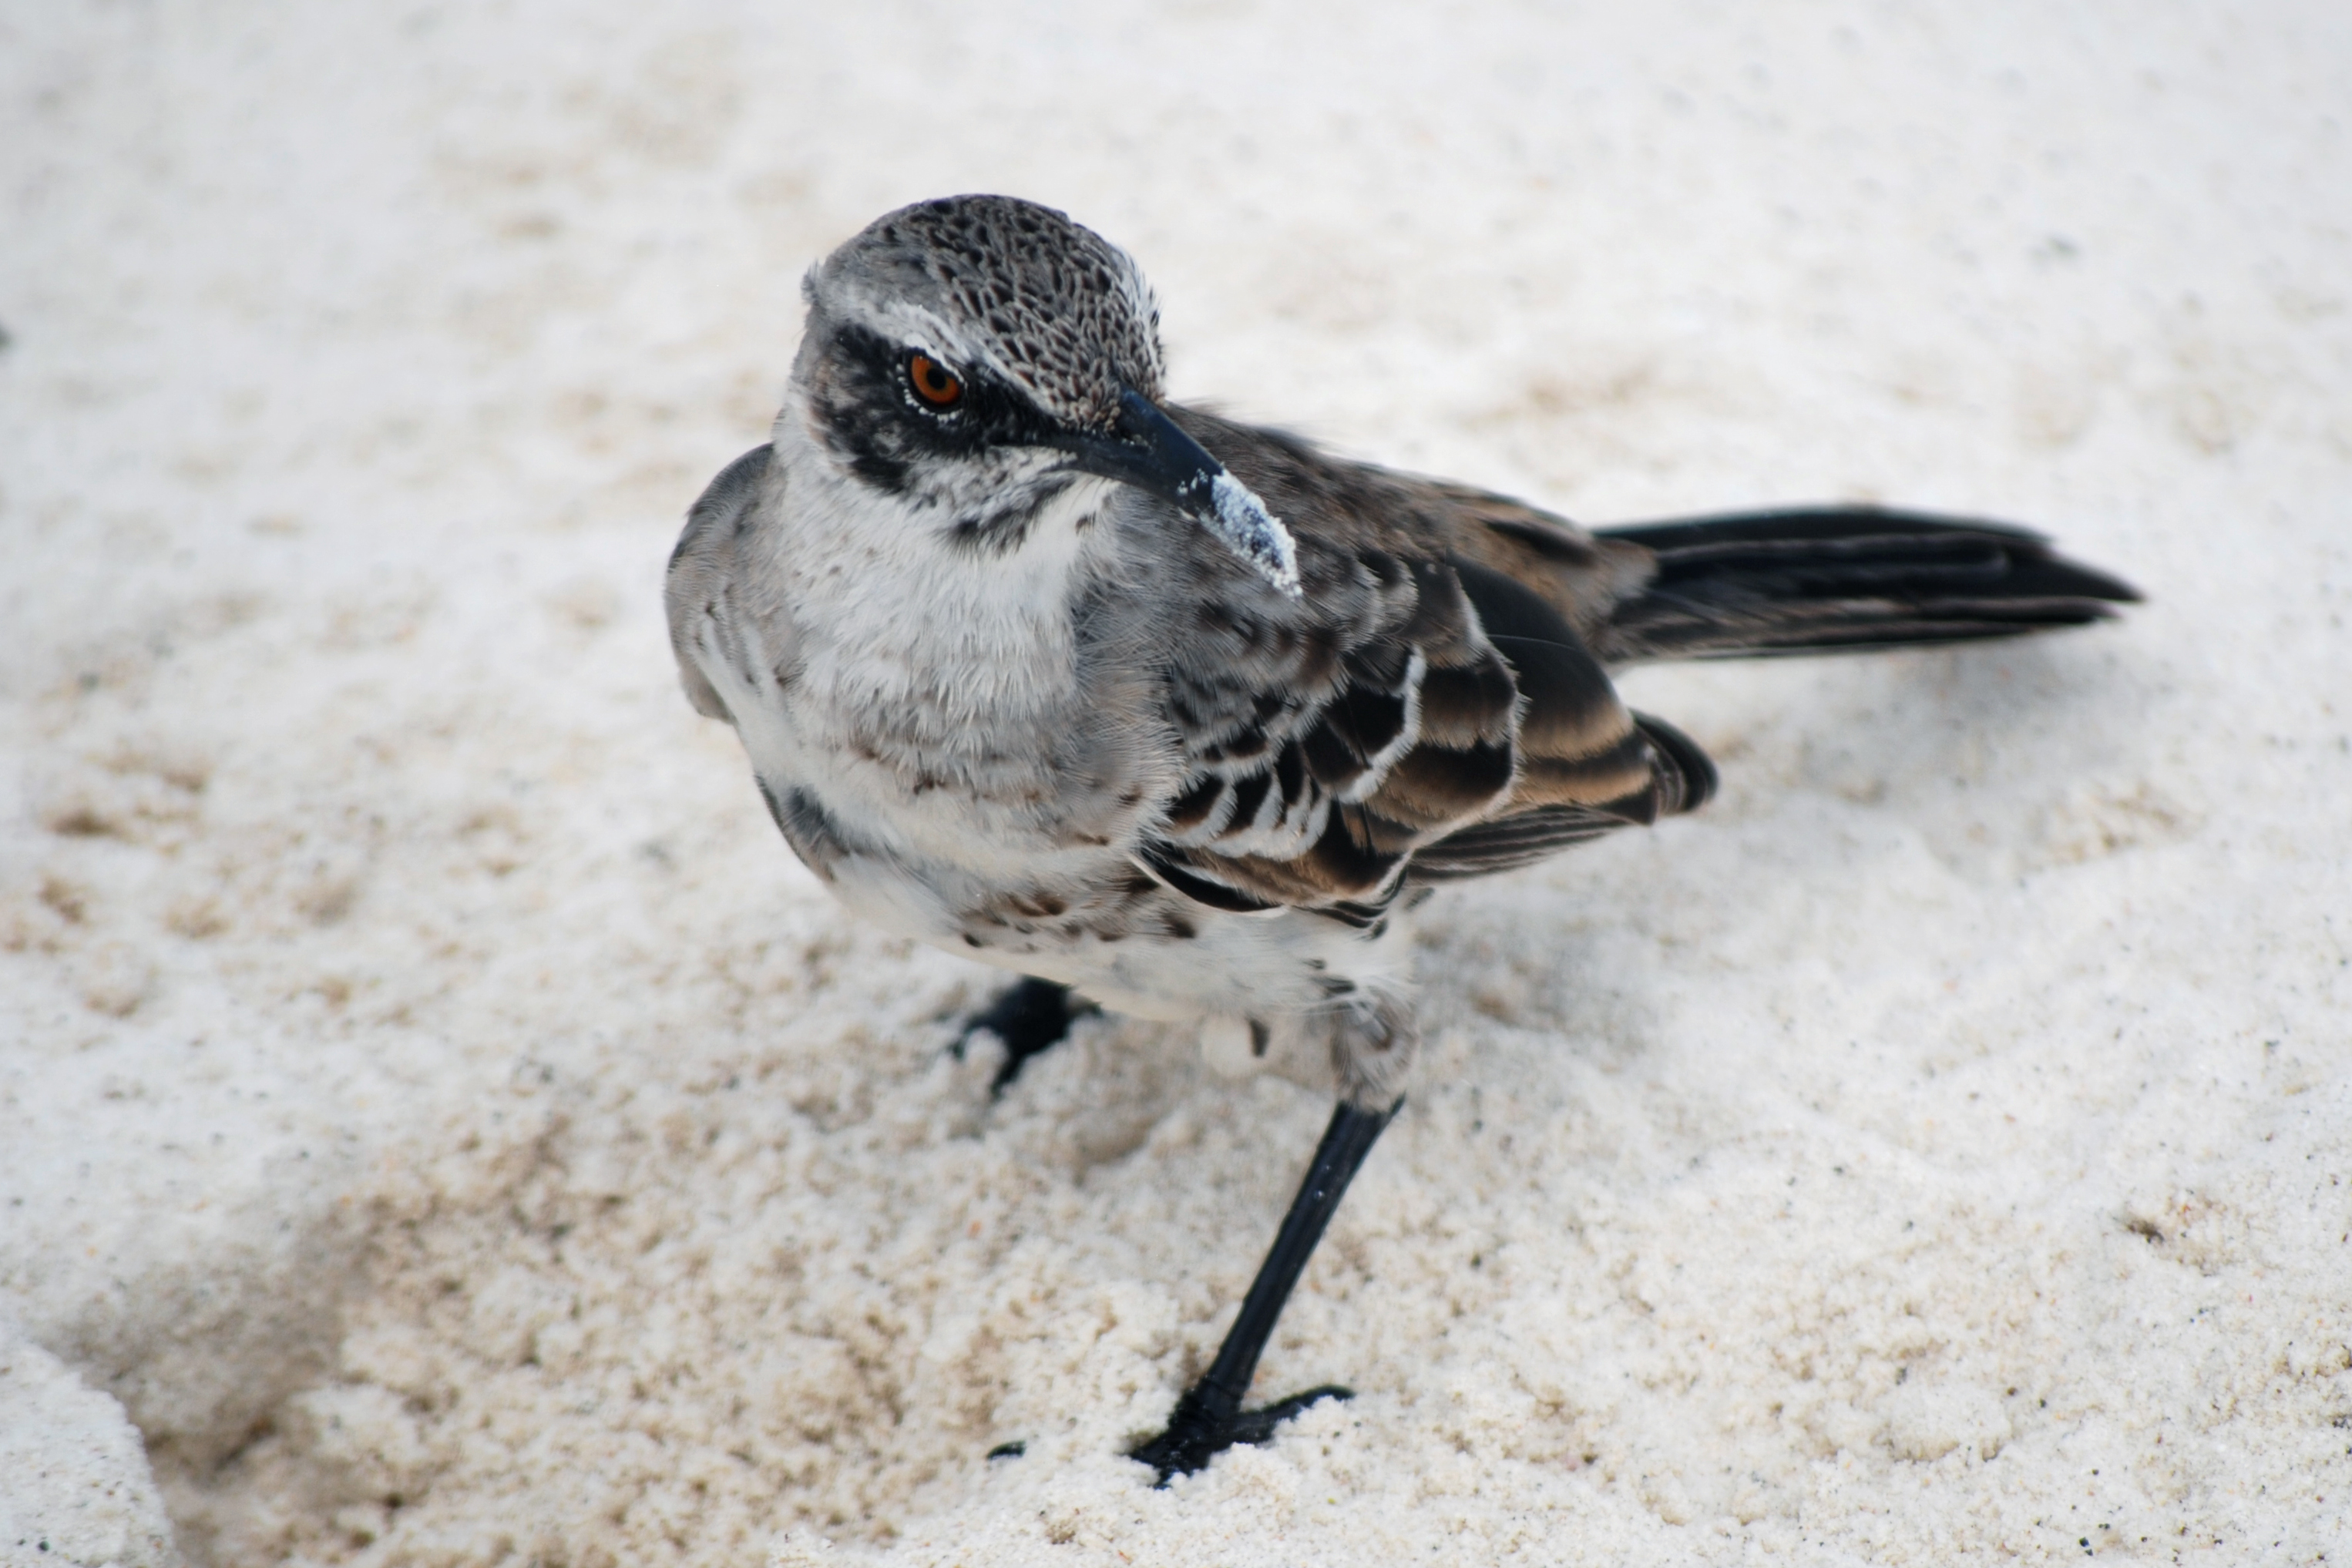 Image of Espanola Mockingbird